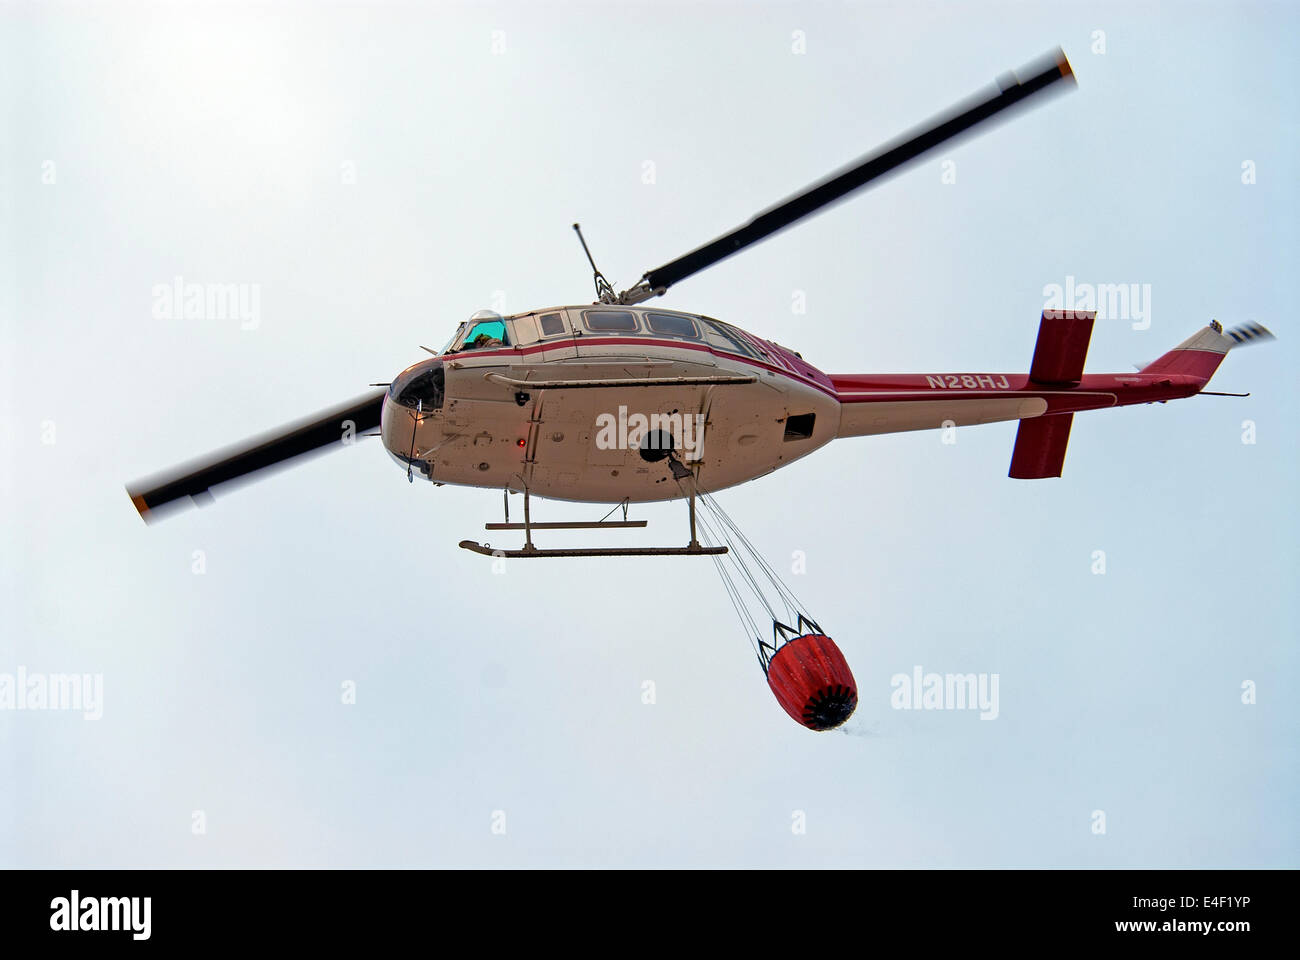 Fire fighter helicopter, USA Stock Photo